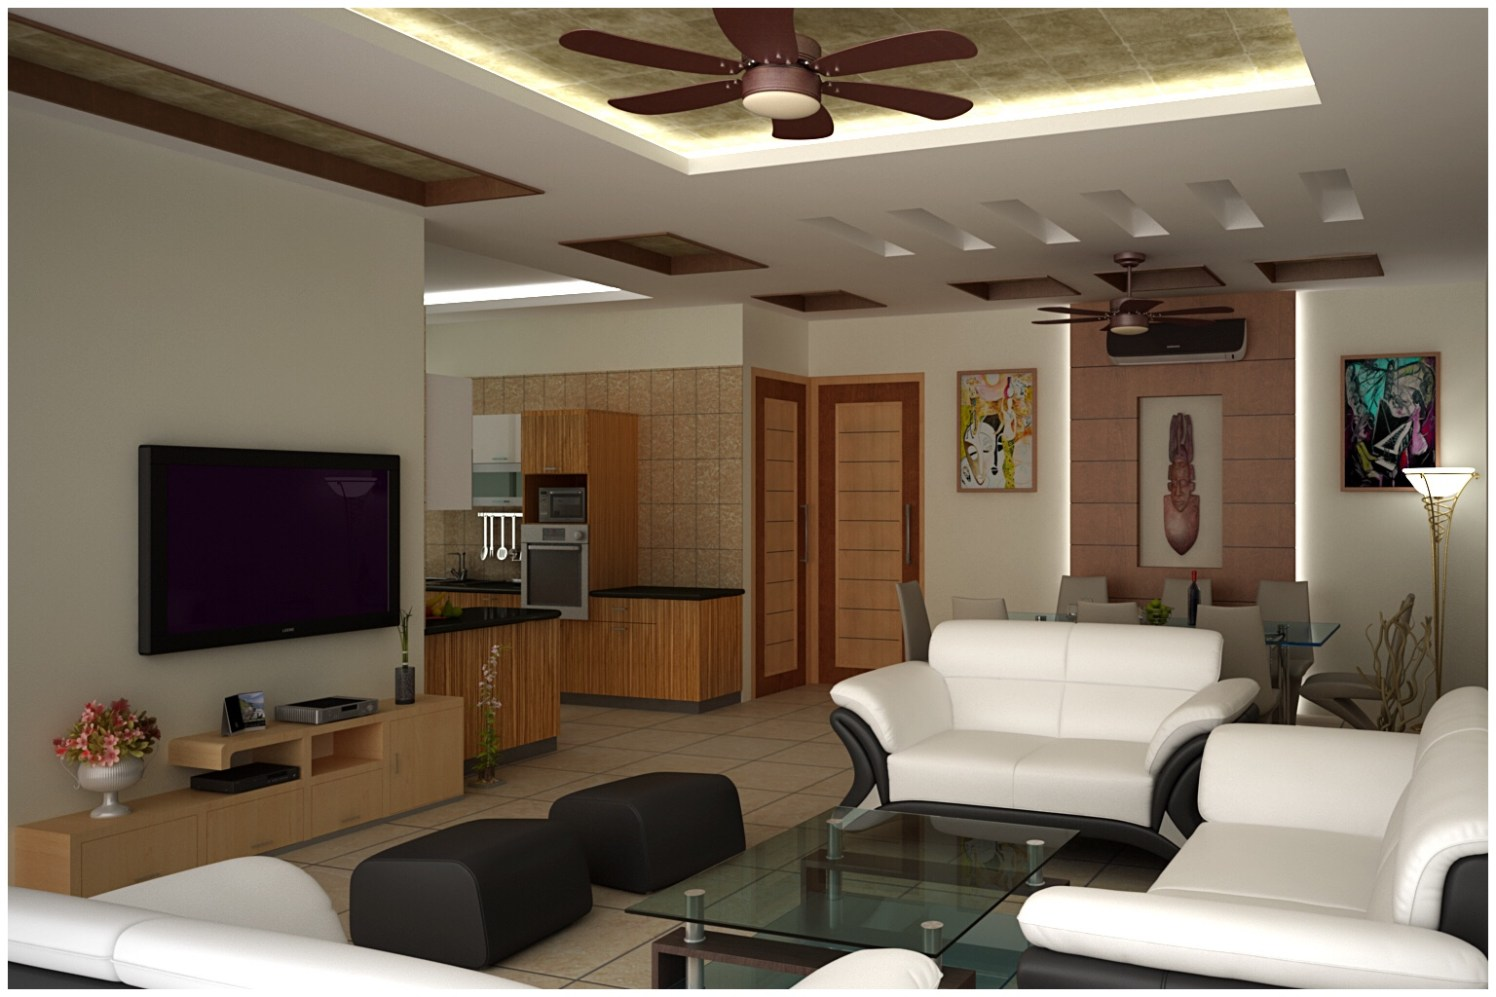 Lawson Sofa And Antique Fan In Living Room by Ashish Singh Living-room Contemporary | Interior Design Photos & Ideas